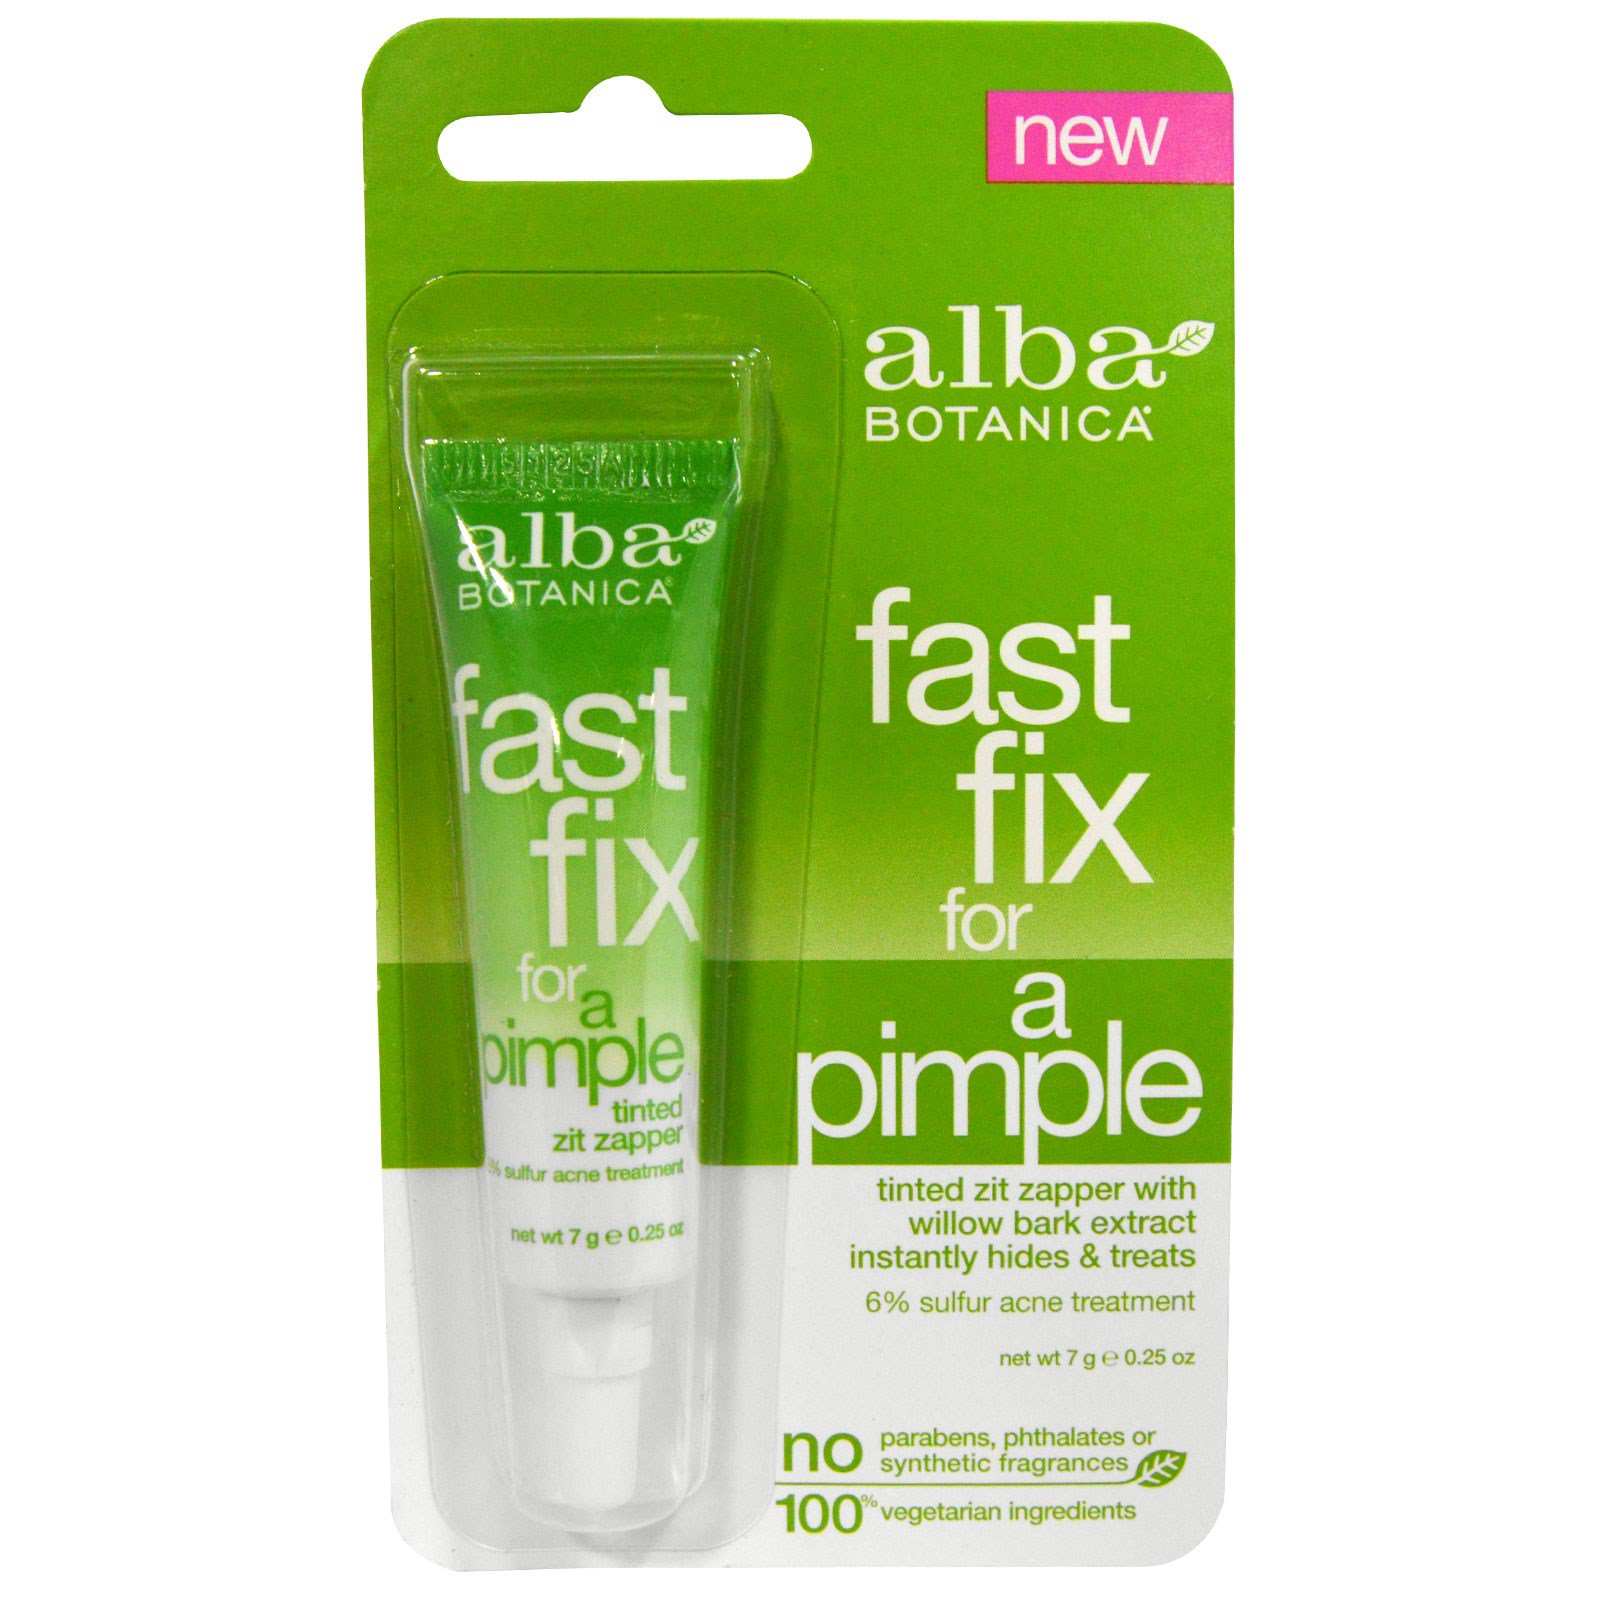 Alba Botanica, Fast Fix For A Pimple, 7 г (0,25 унц)